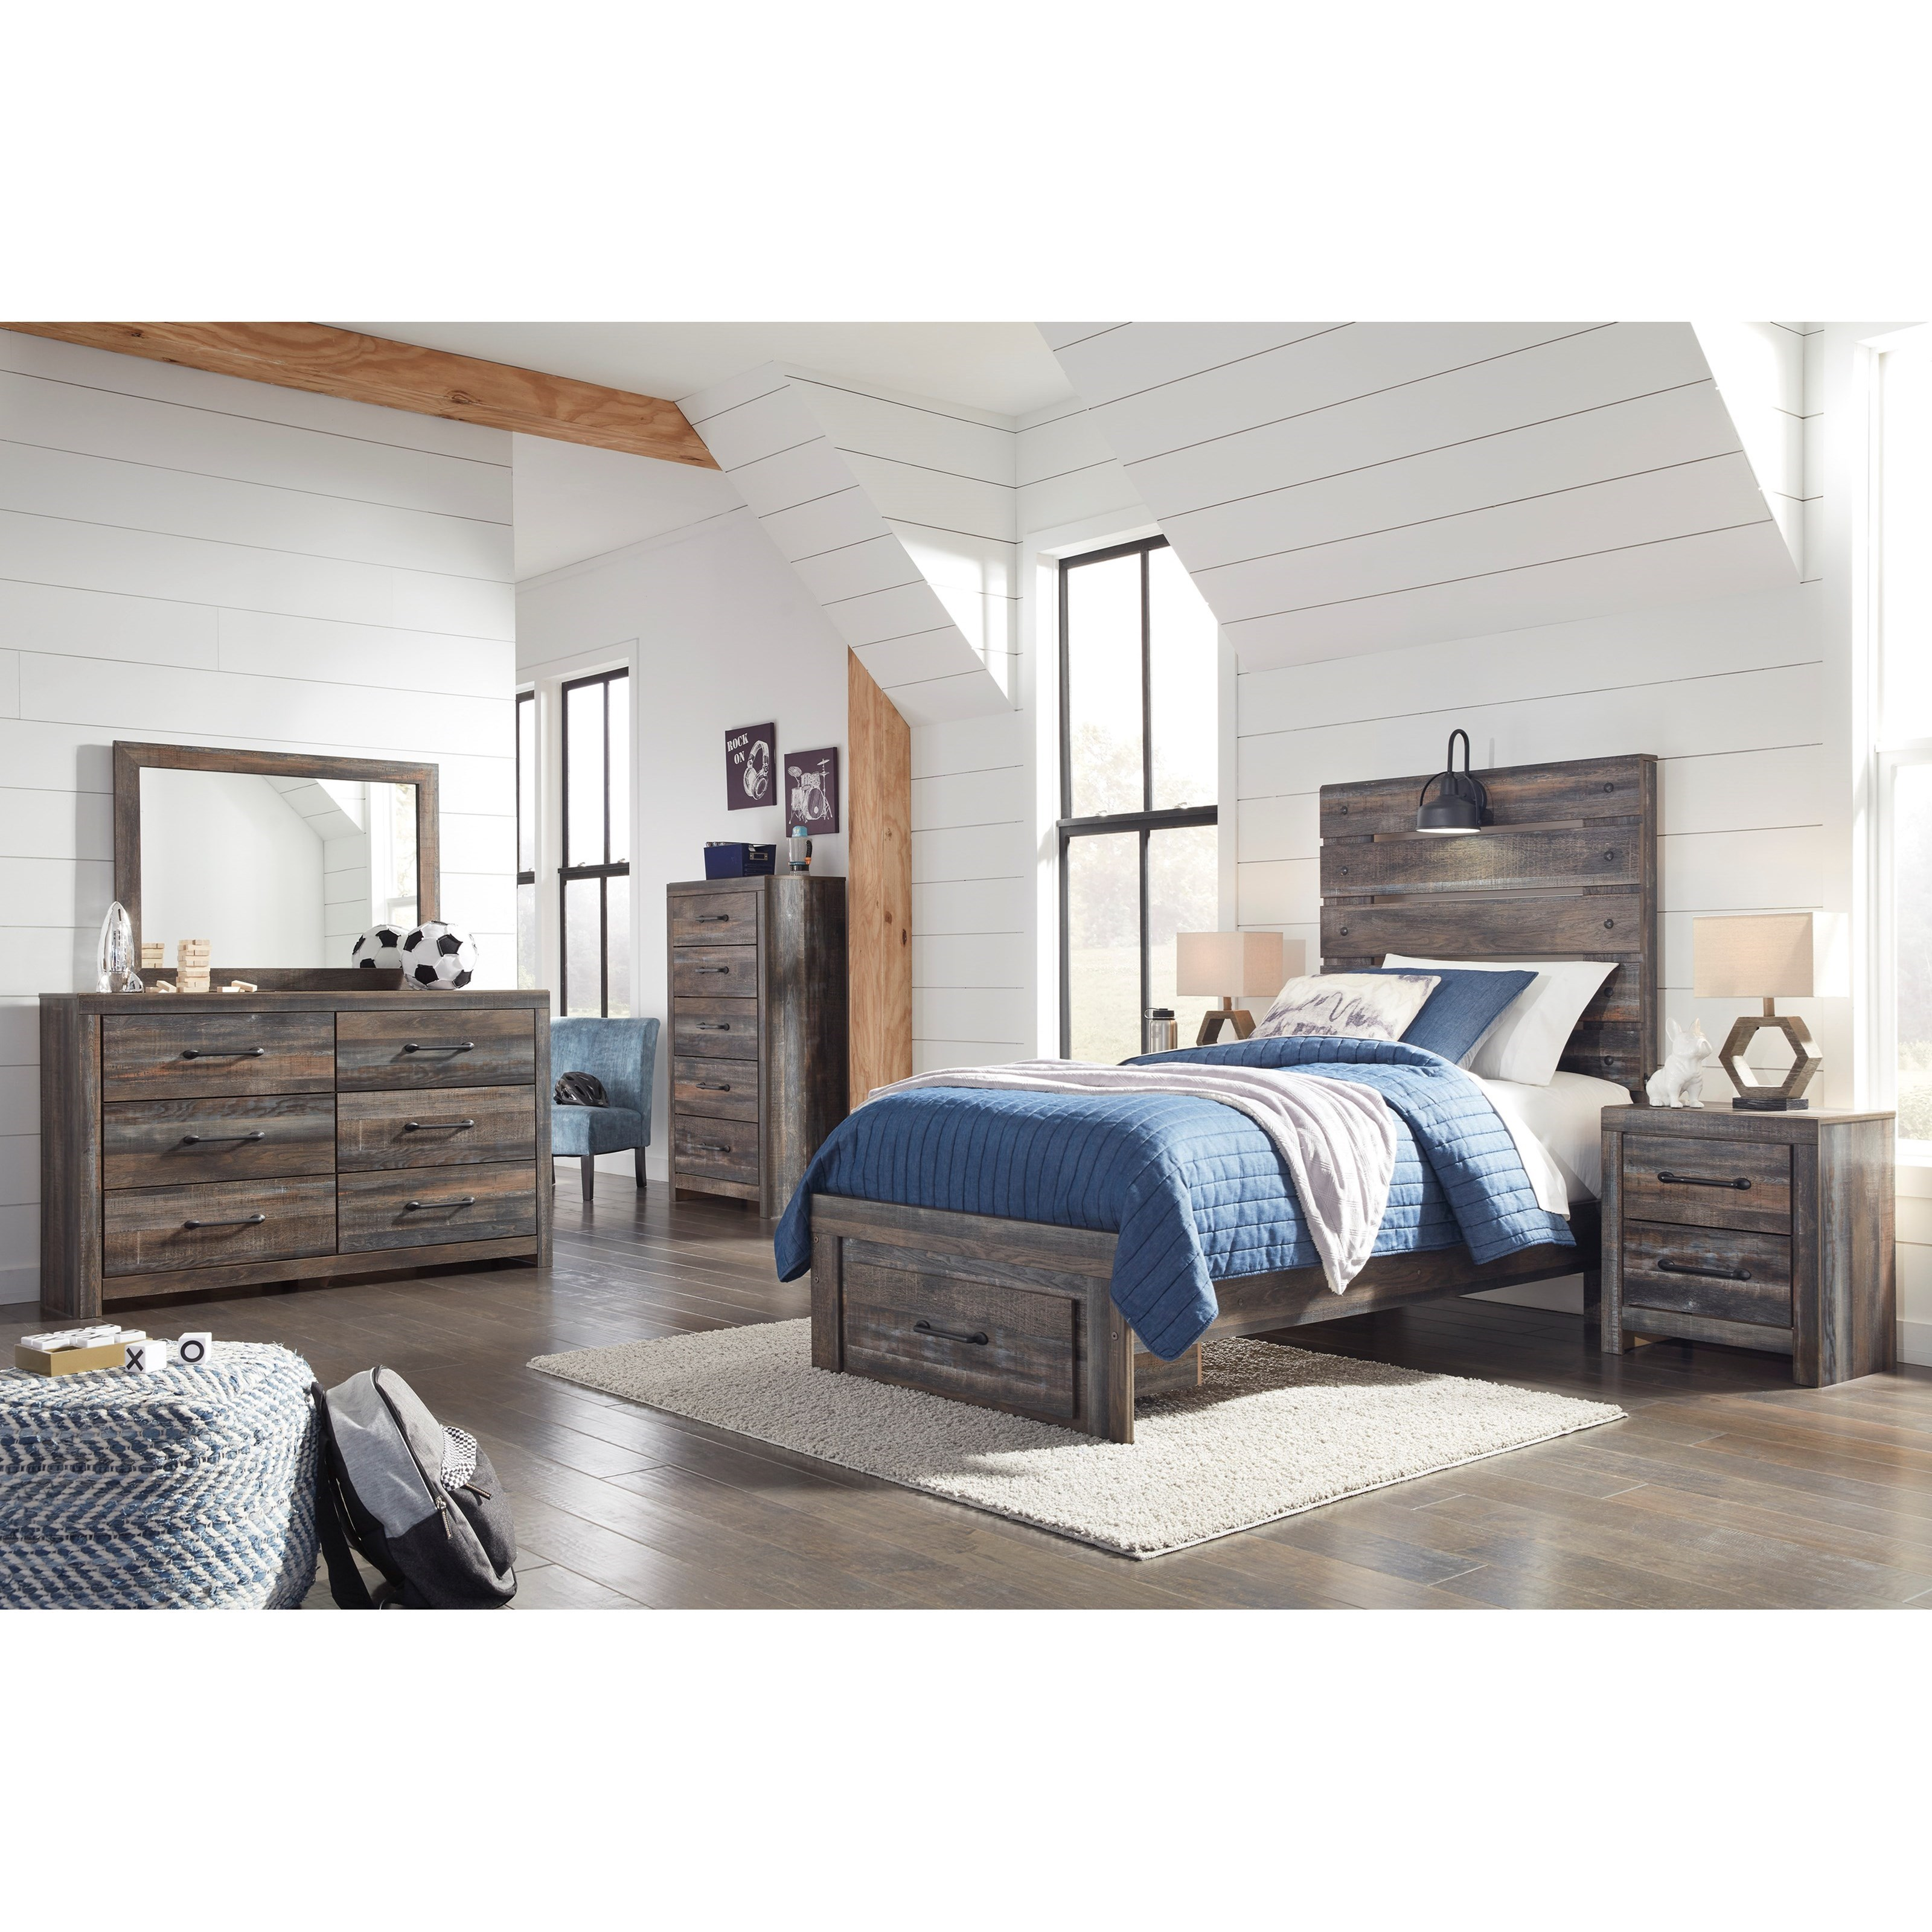 Drystan Twin Bedroom Group by Signature Design by Ashley at Northeast Factory Direct